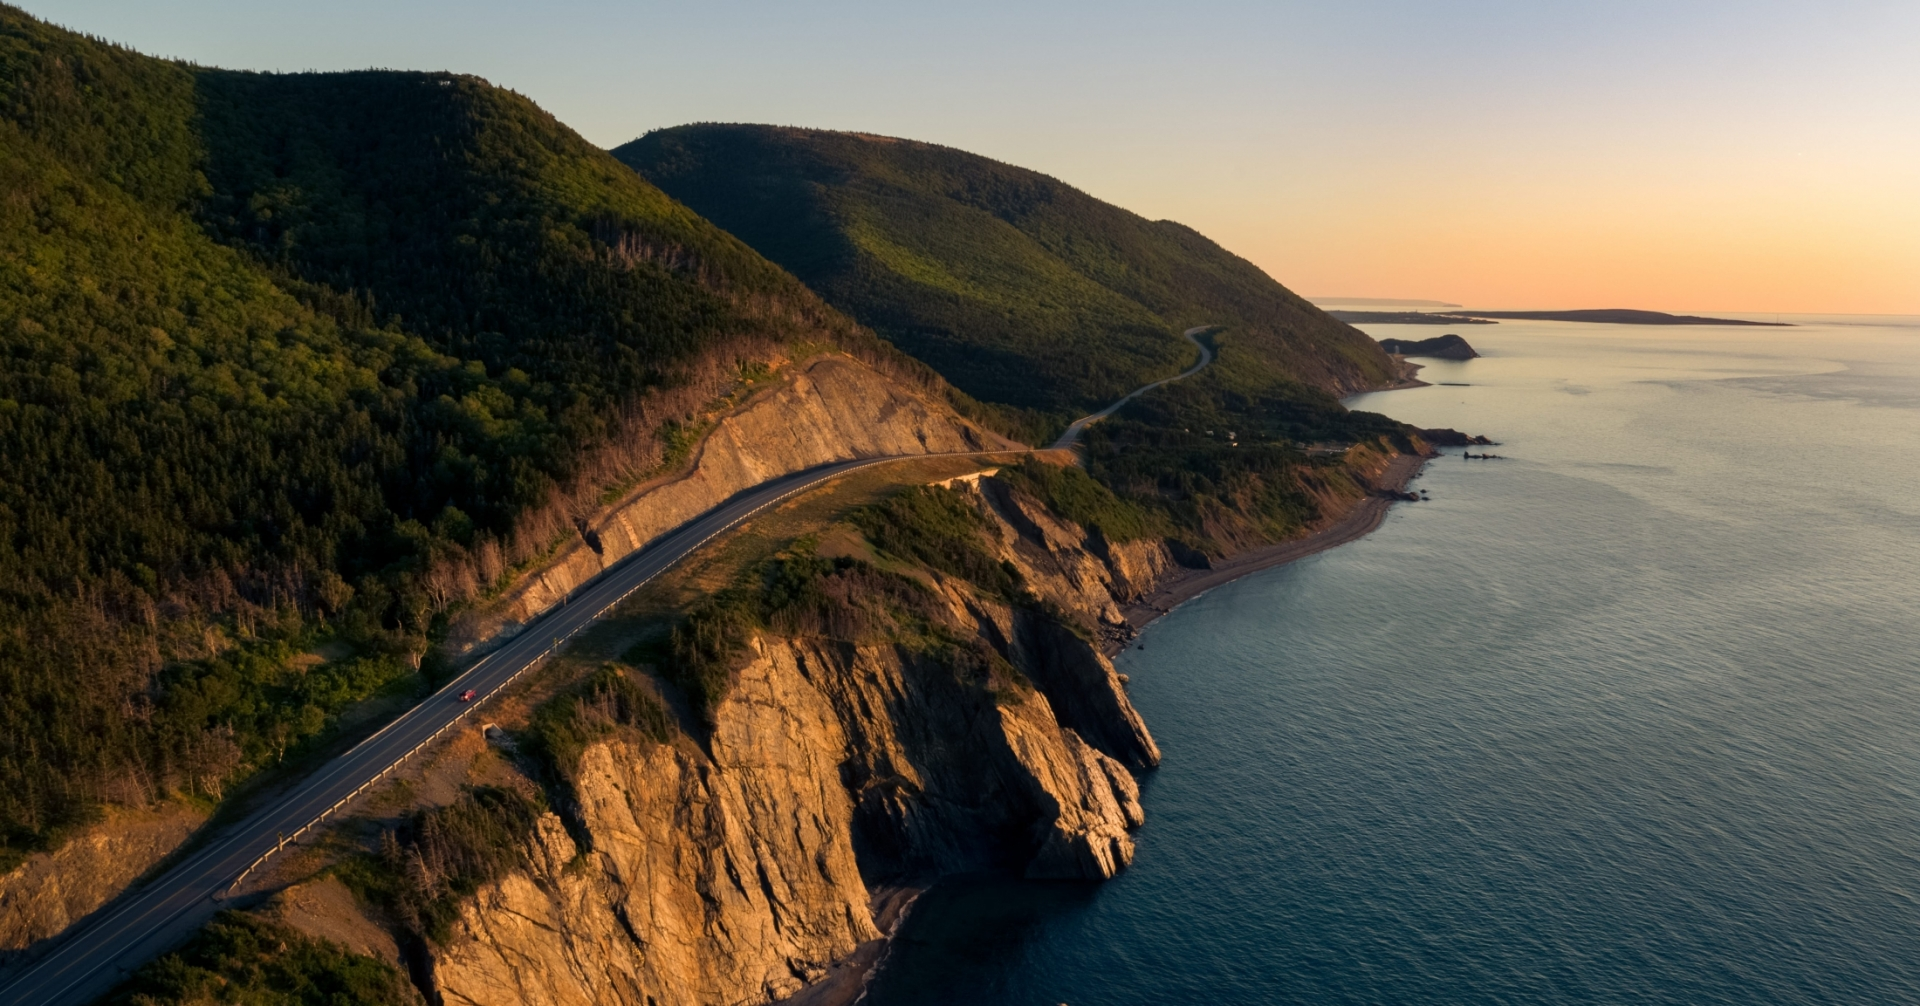 Sunset on the Cabot Trail Coastline, Cap Rouge